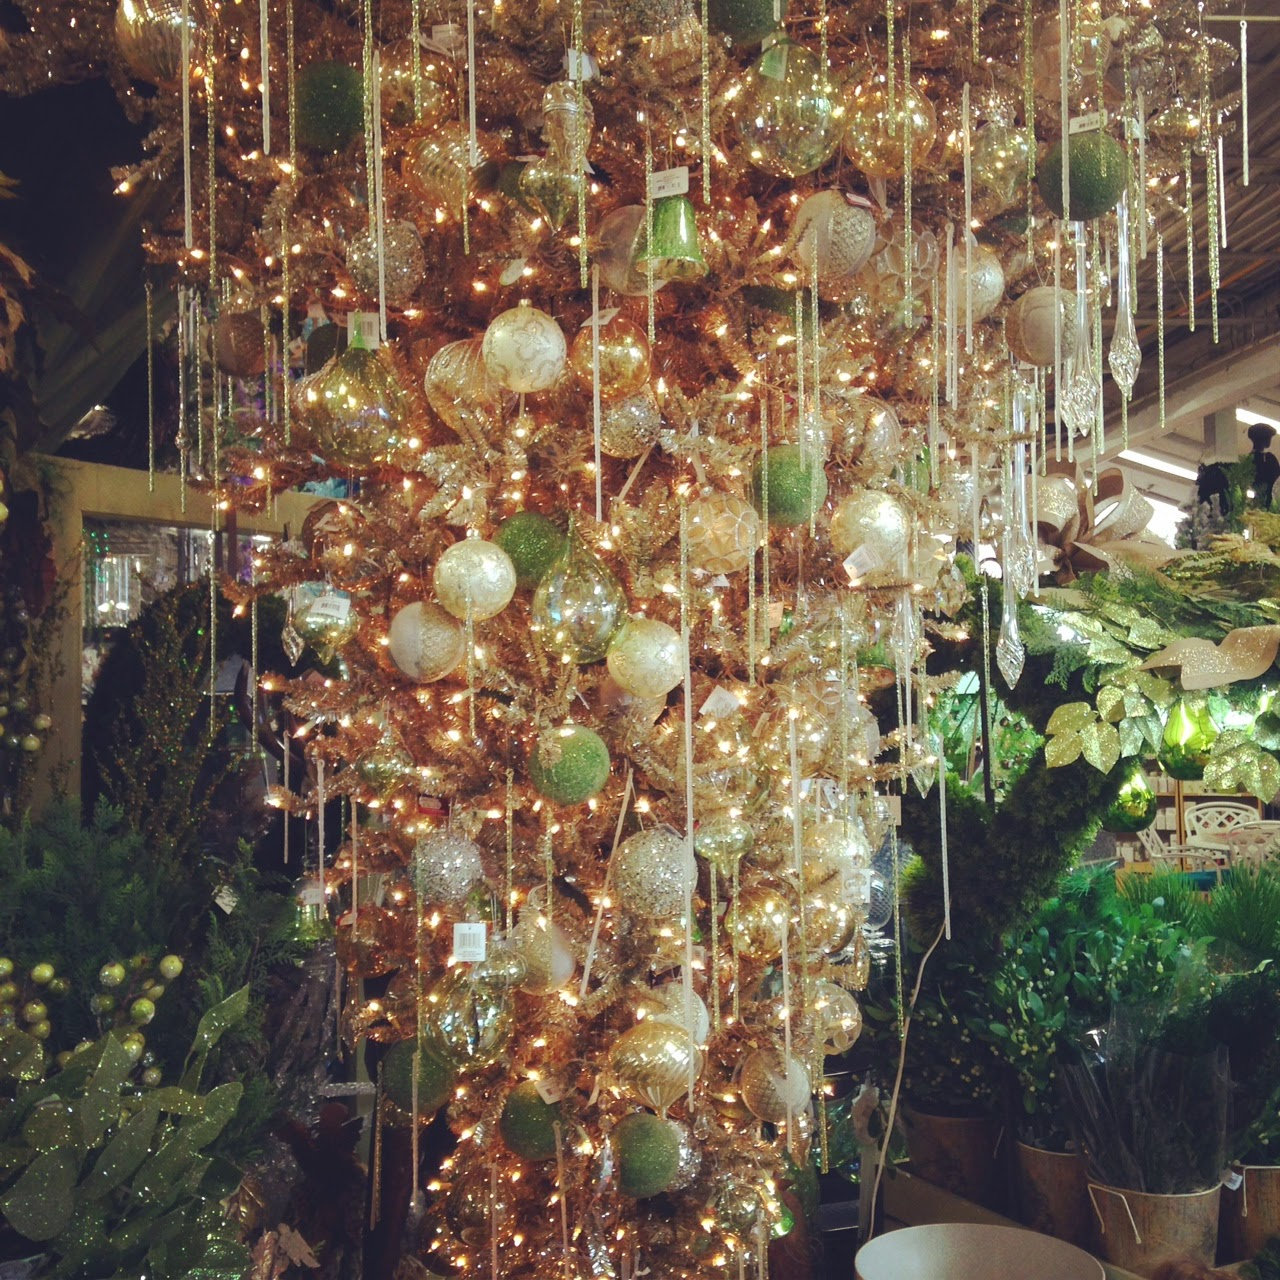 Why Upside Down Christmas Tree: Girl It Up!: Christmas Tree Decorating Trends 2014